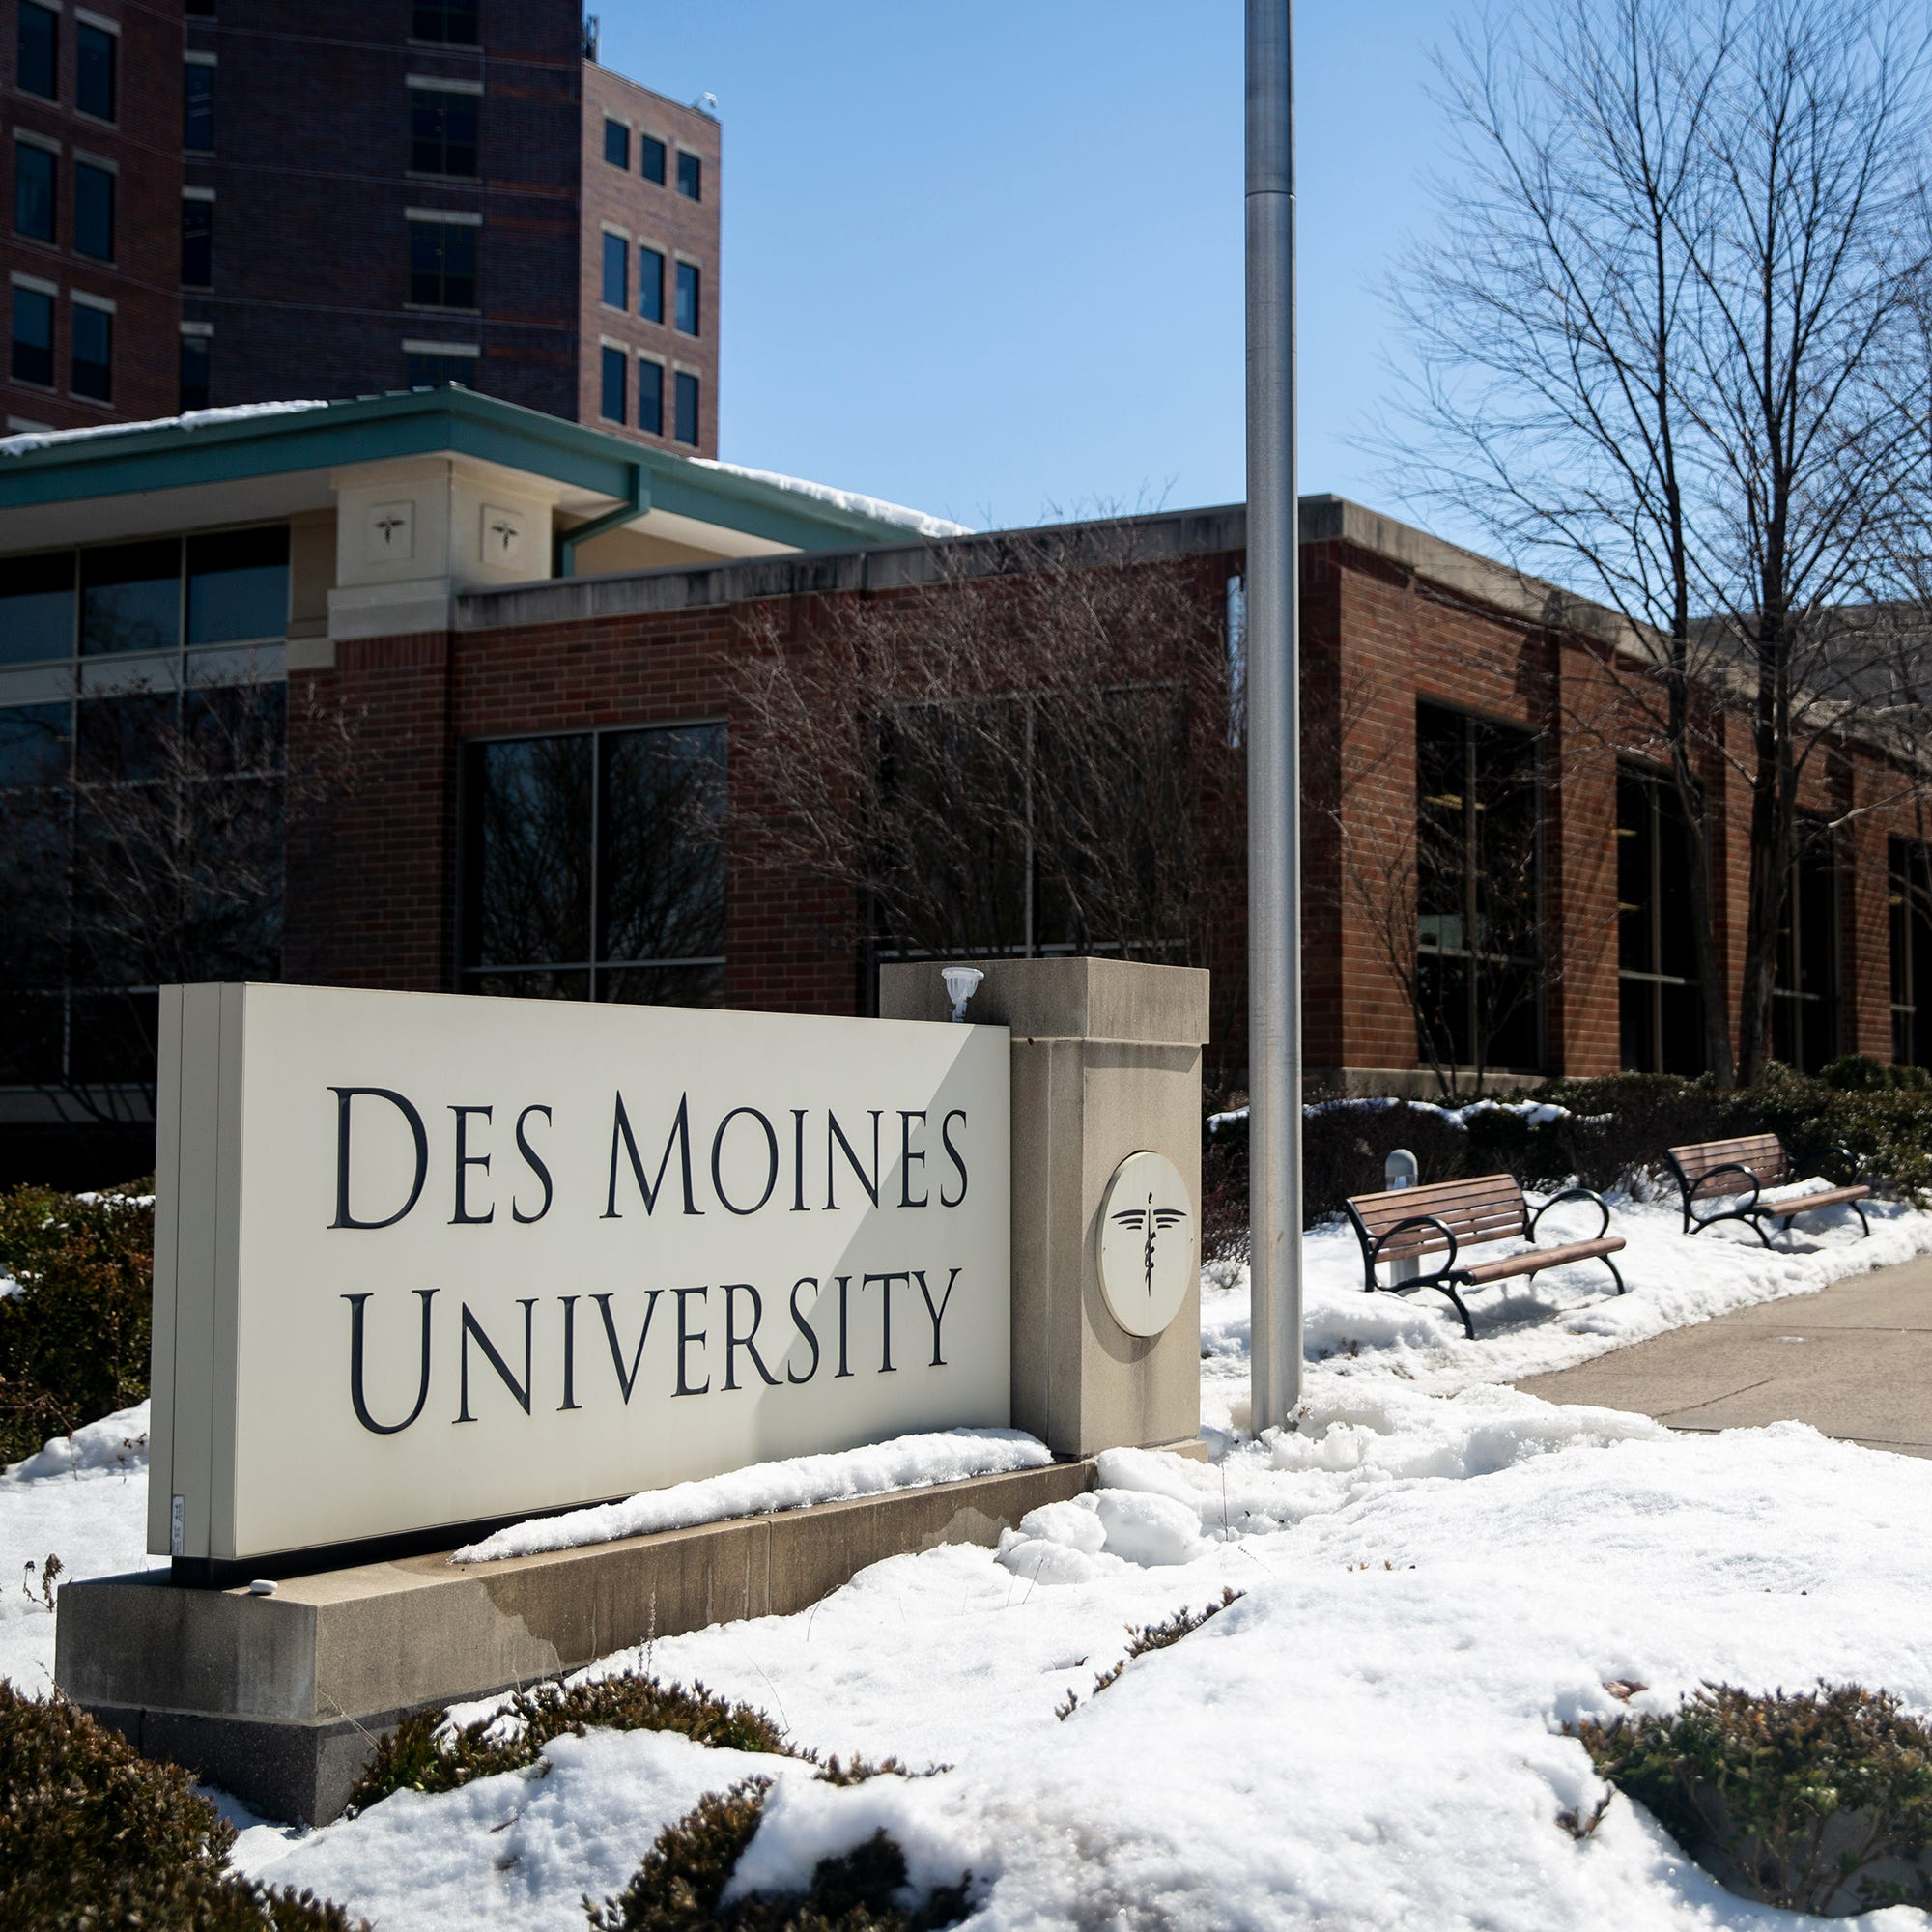 Des Moines University's move creates rare opportunity for Iowa's capital city